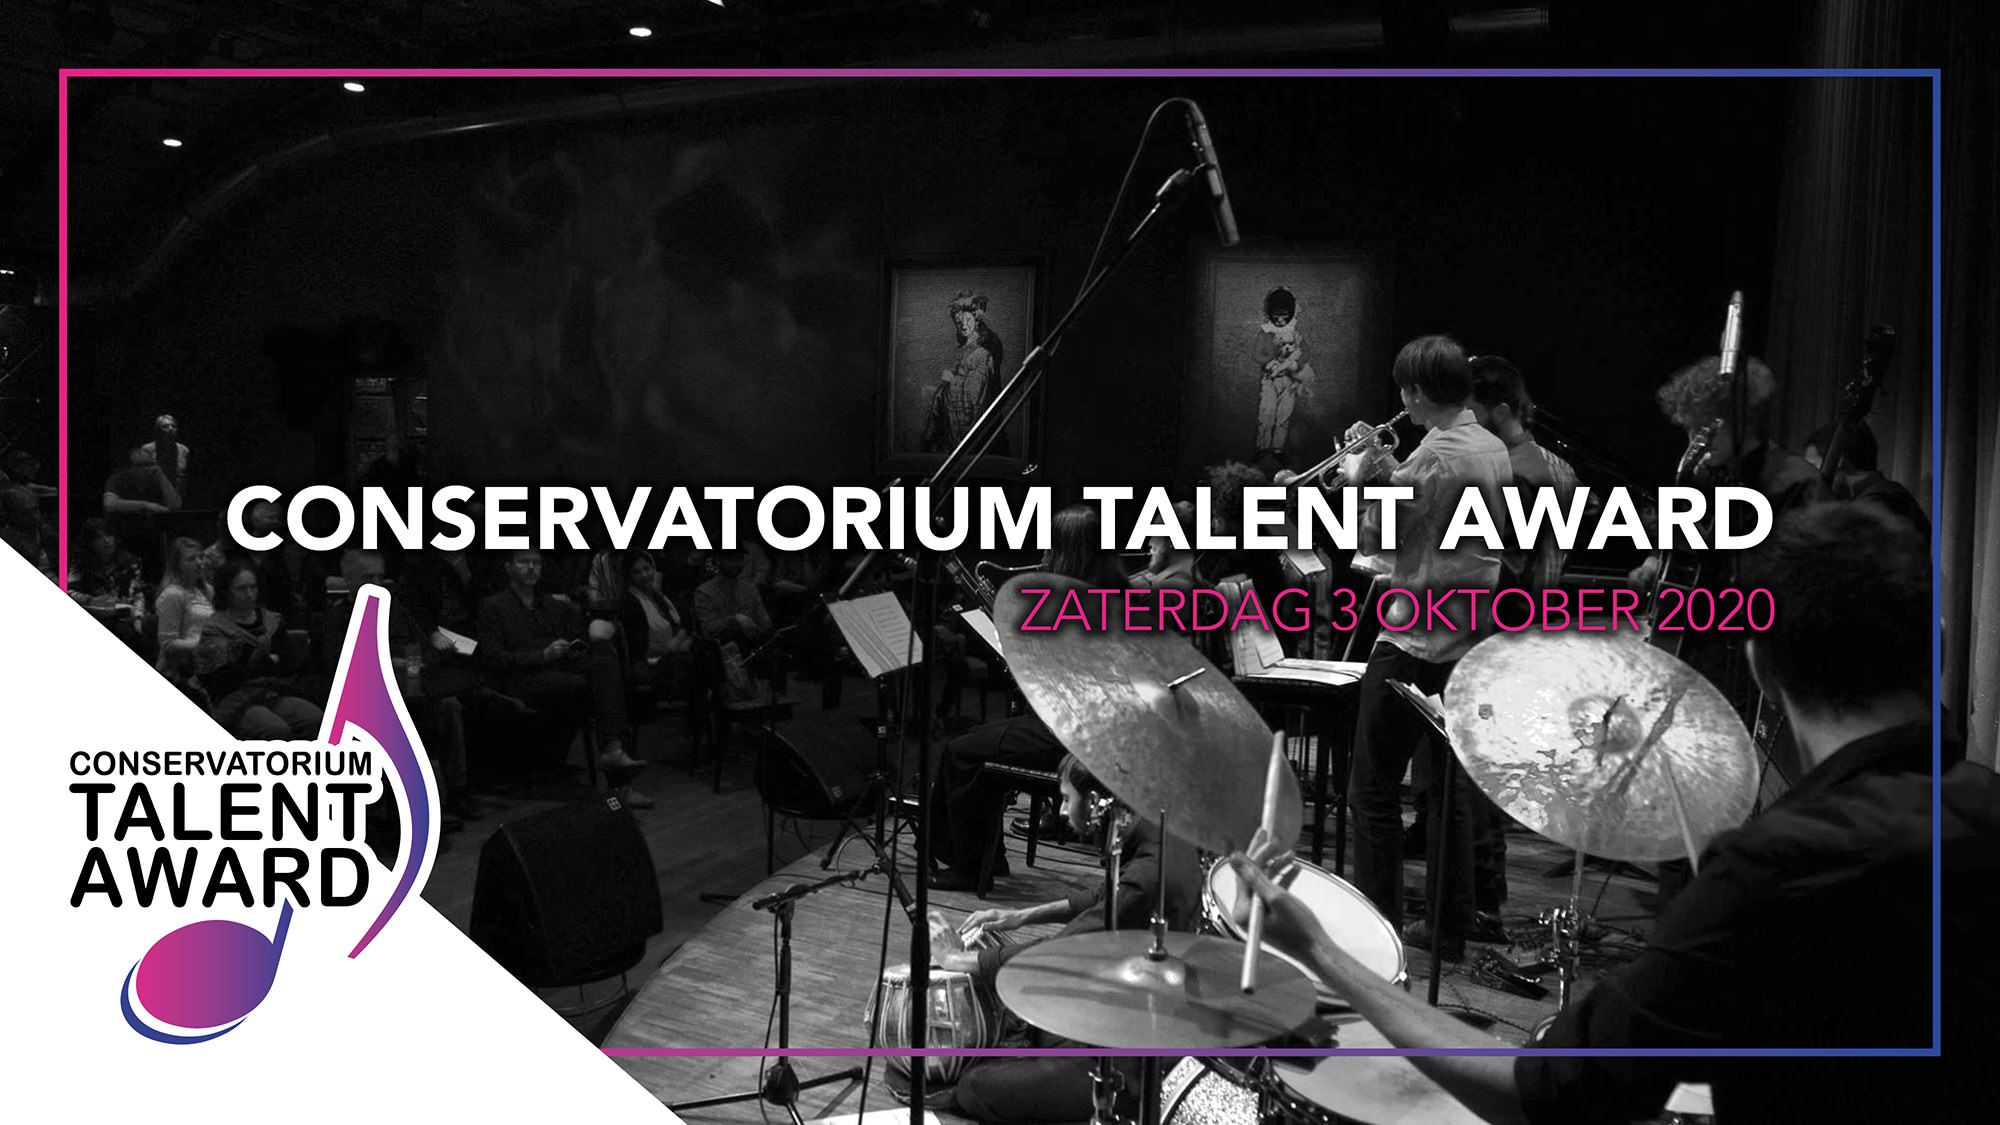 Conservatorium Talent Award 2020